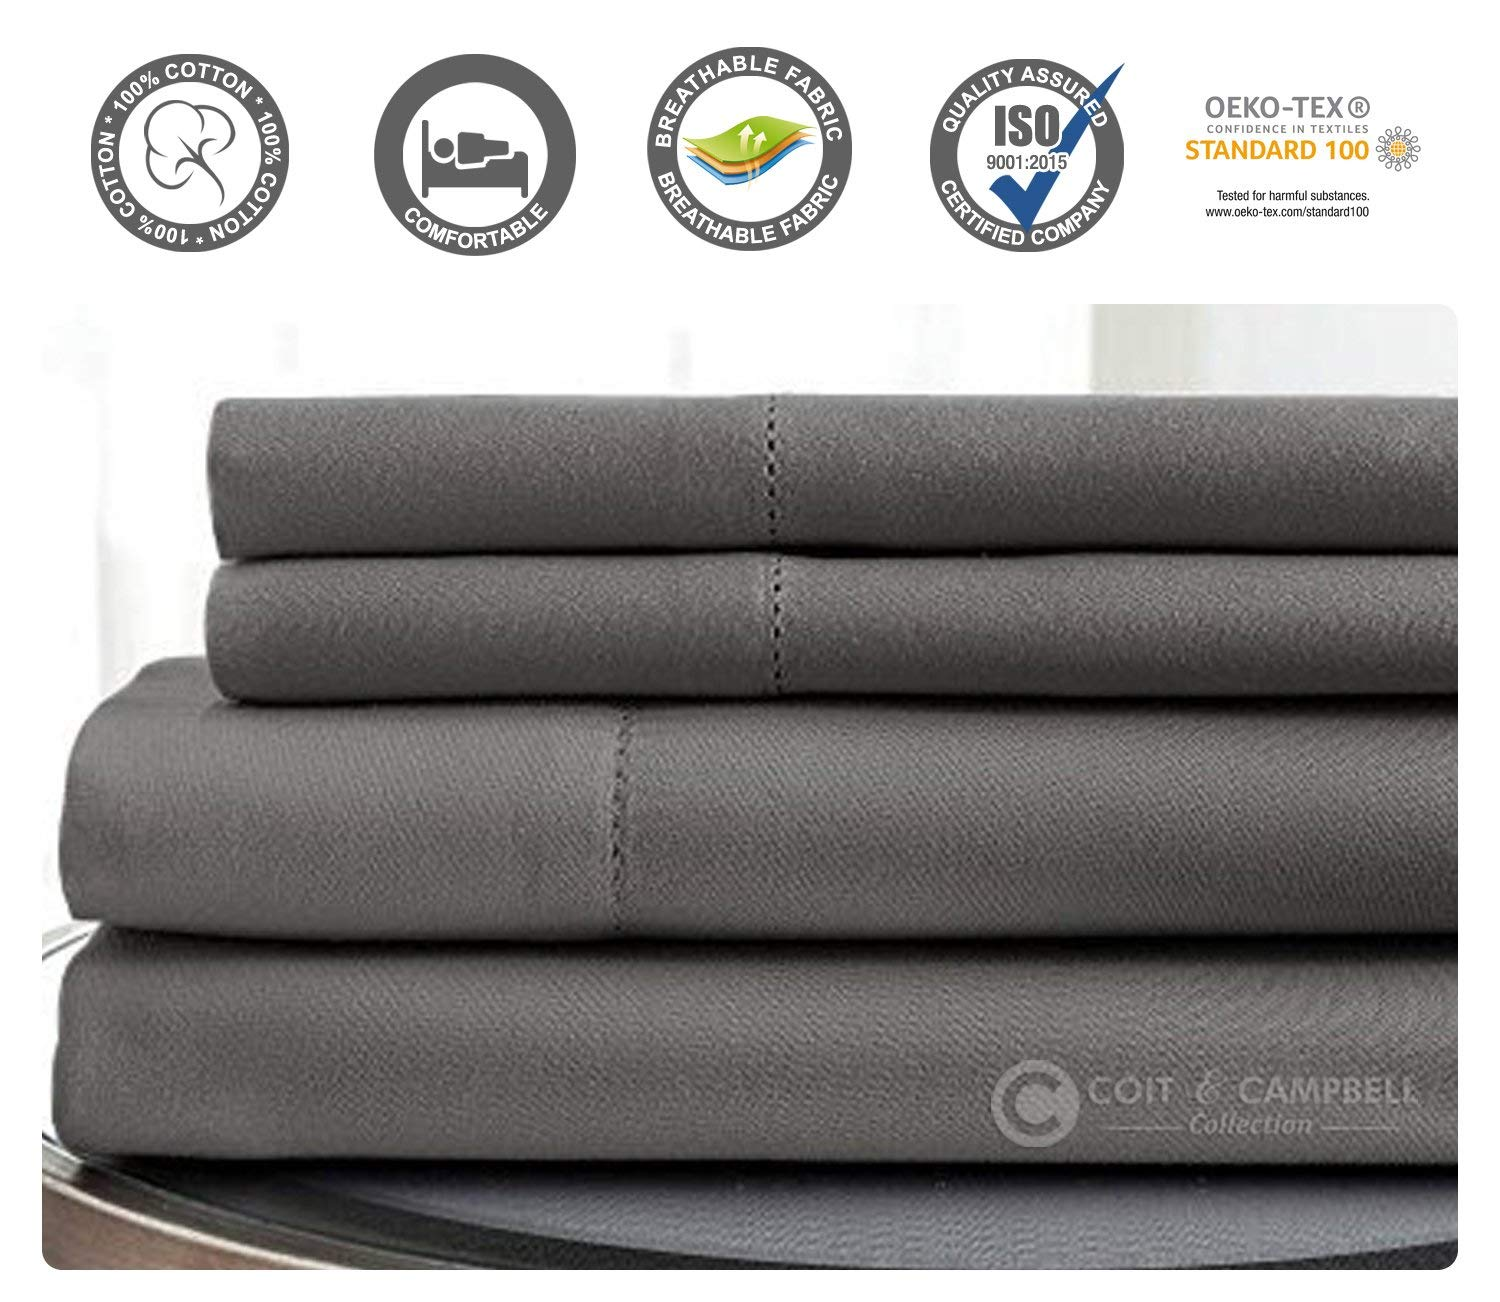 Coit /& Campbell Hotel Premium Collection 400 Thread Count 100/% Cotton Sateen Sheet Set Full Size Burgundy Coit /& Campbell Collection